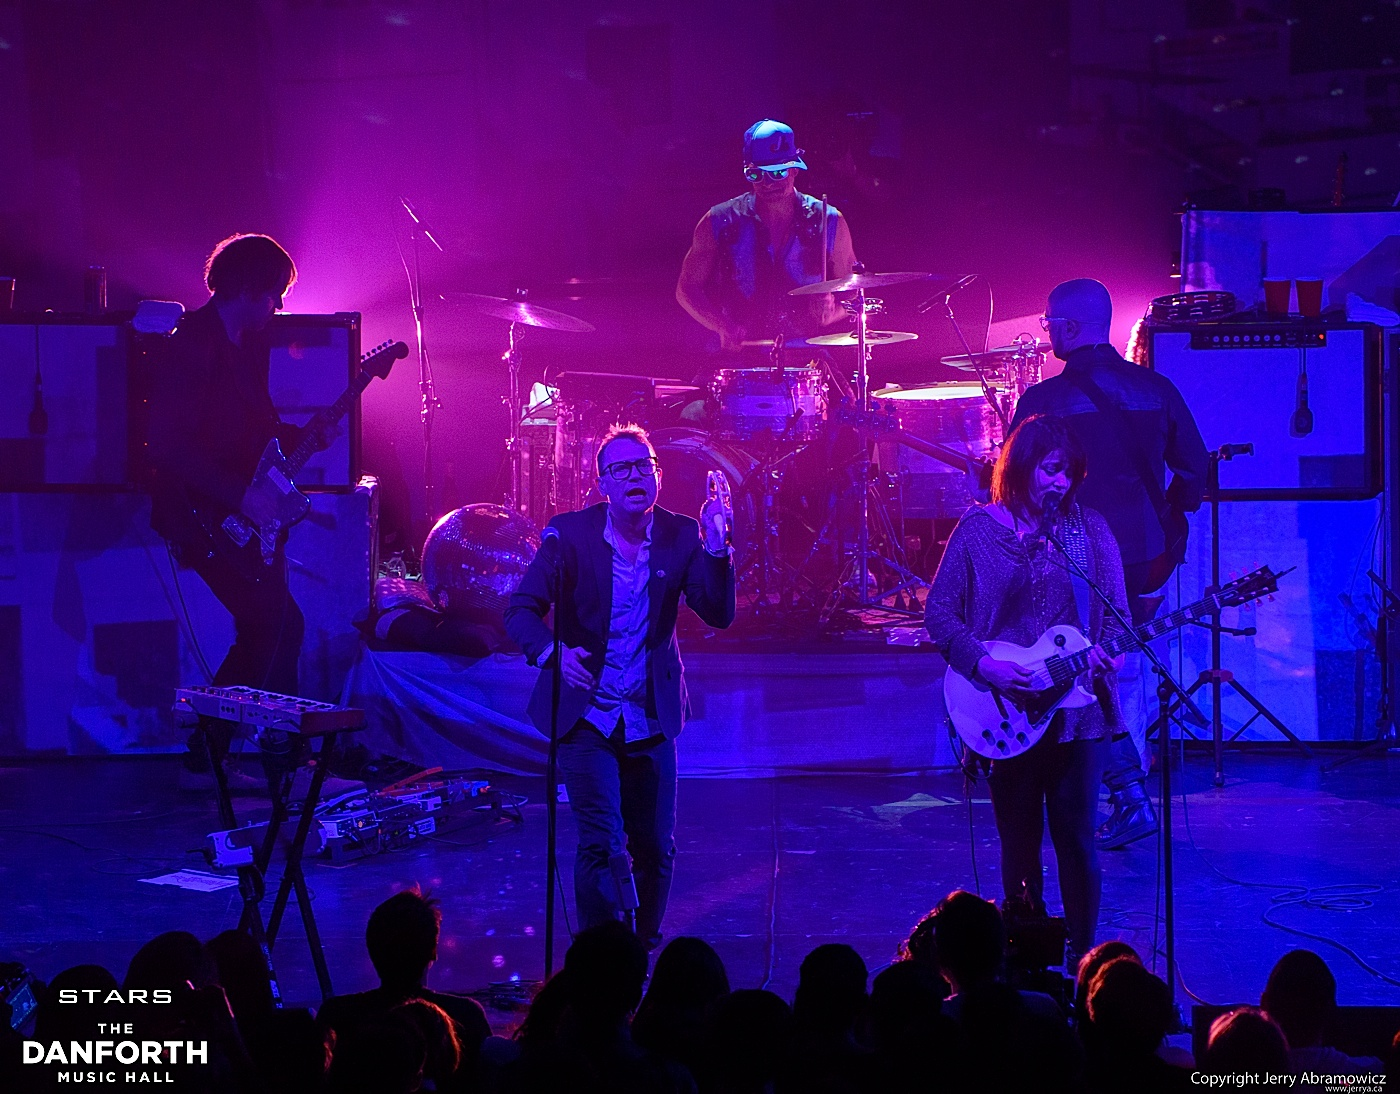 STARS  play a sold out show at The Danforth Music Hall.